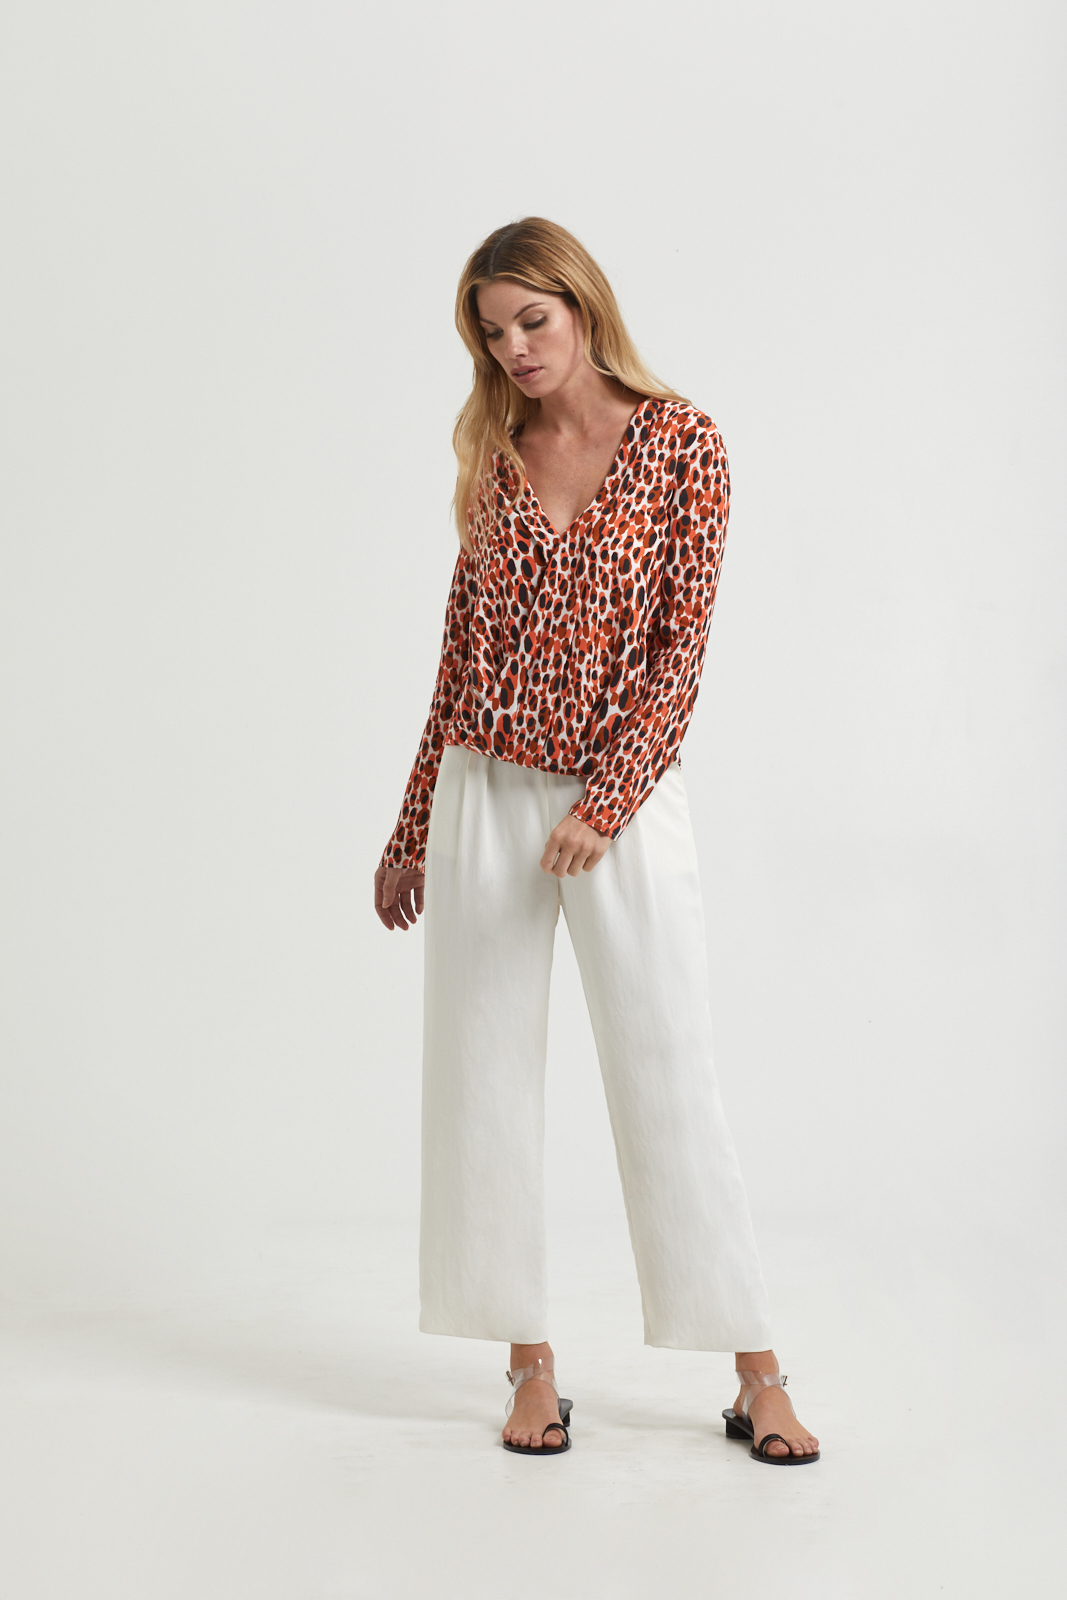 Edited - Final Select - Gretchen Blouse - Animal Poppy - 182-182_Front